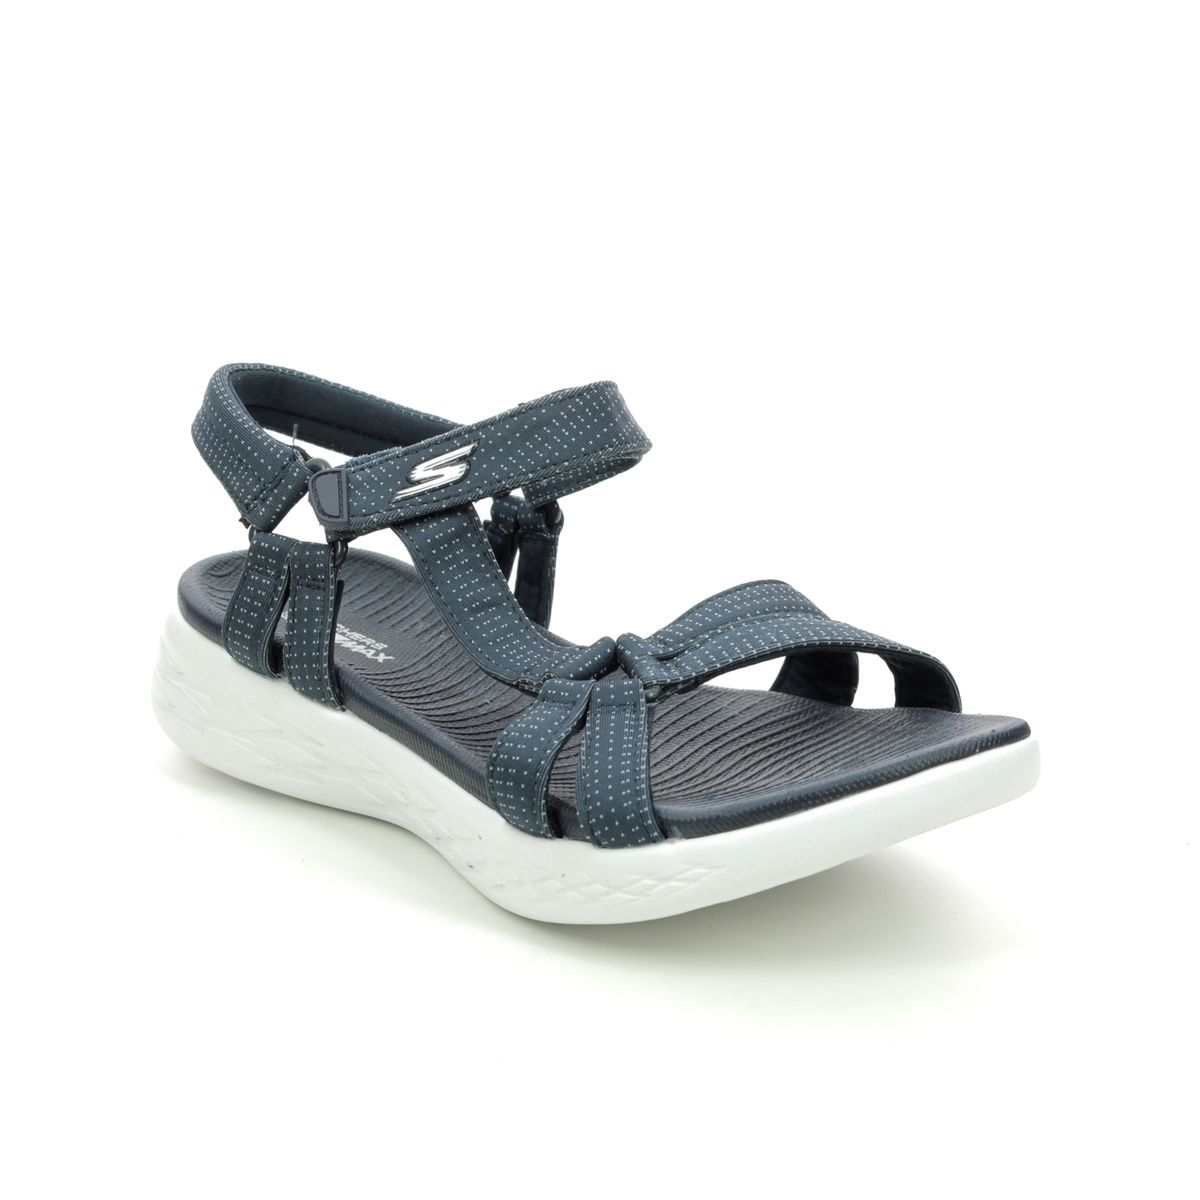 LADIES SKECHERS GO WALK BRILLIANCY NAVY ADJUSTABLE STRAP SANDALS 15316//NVY